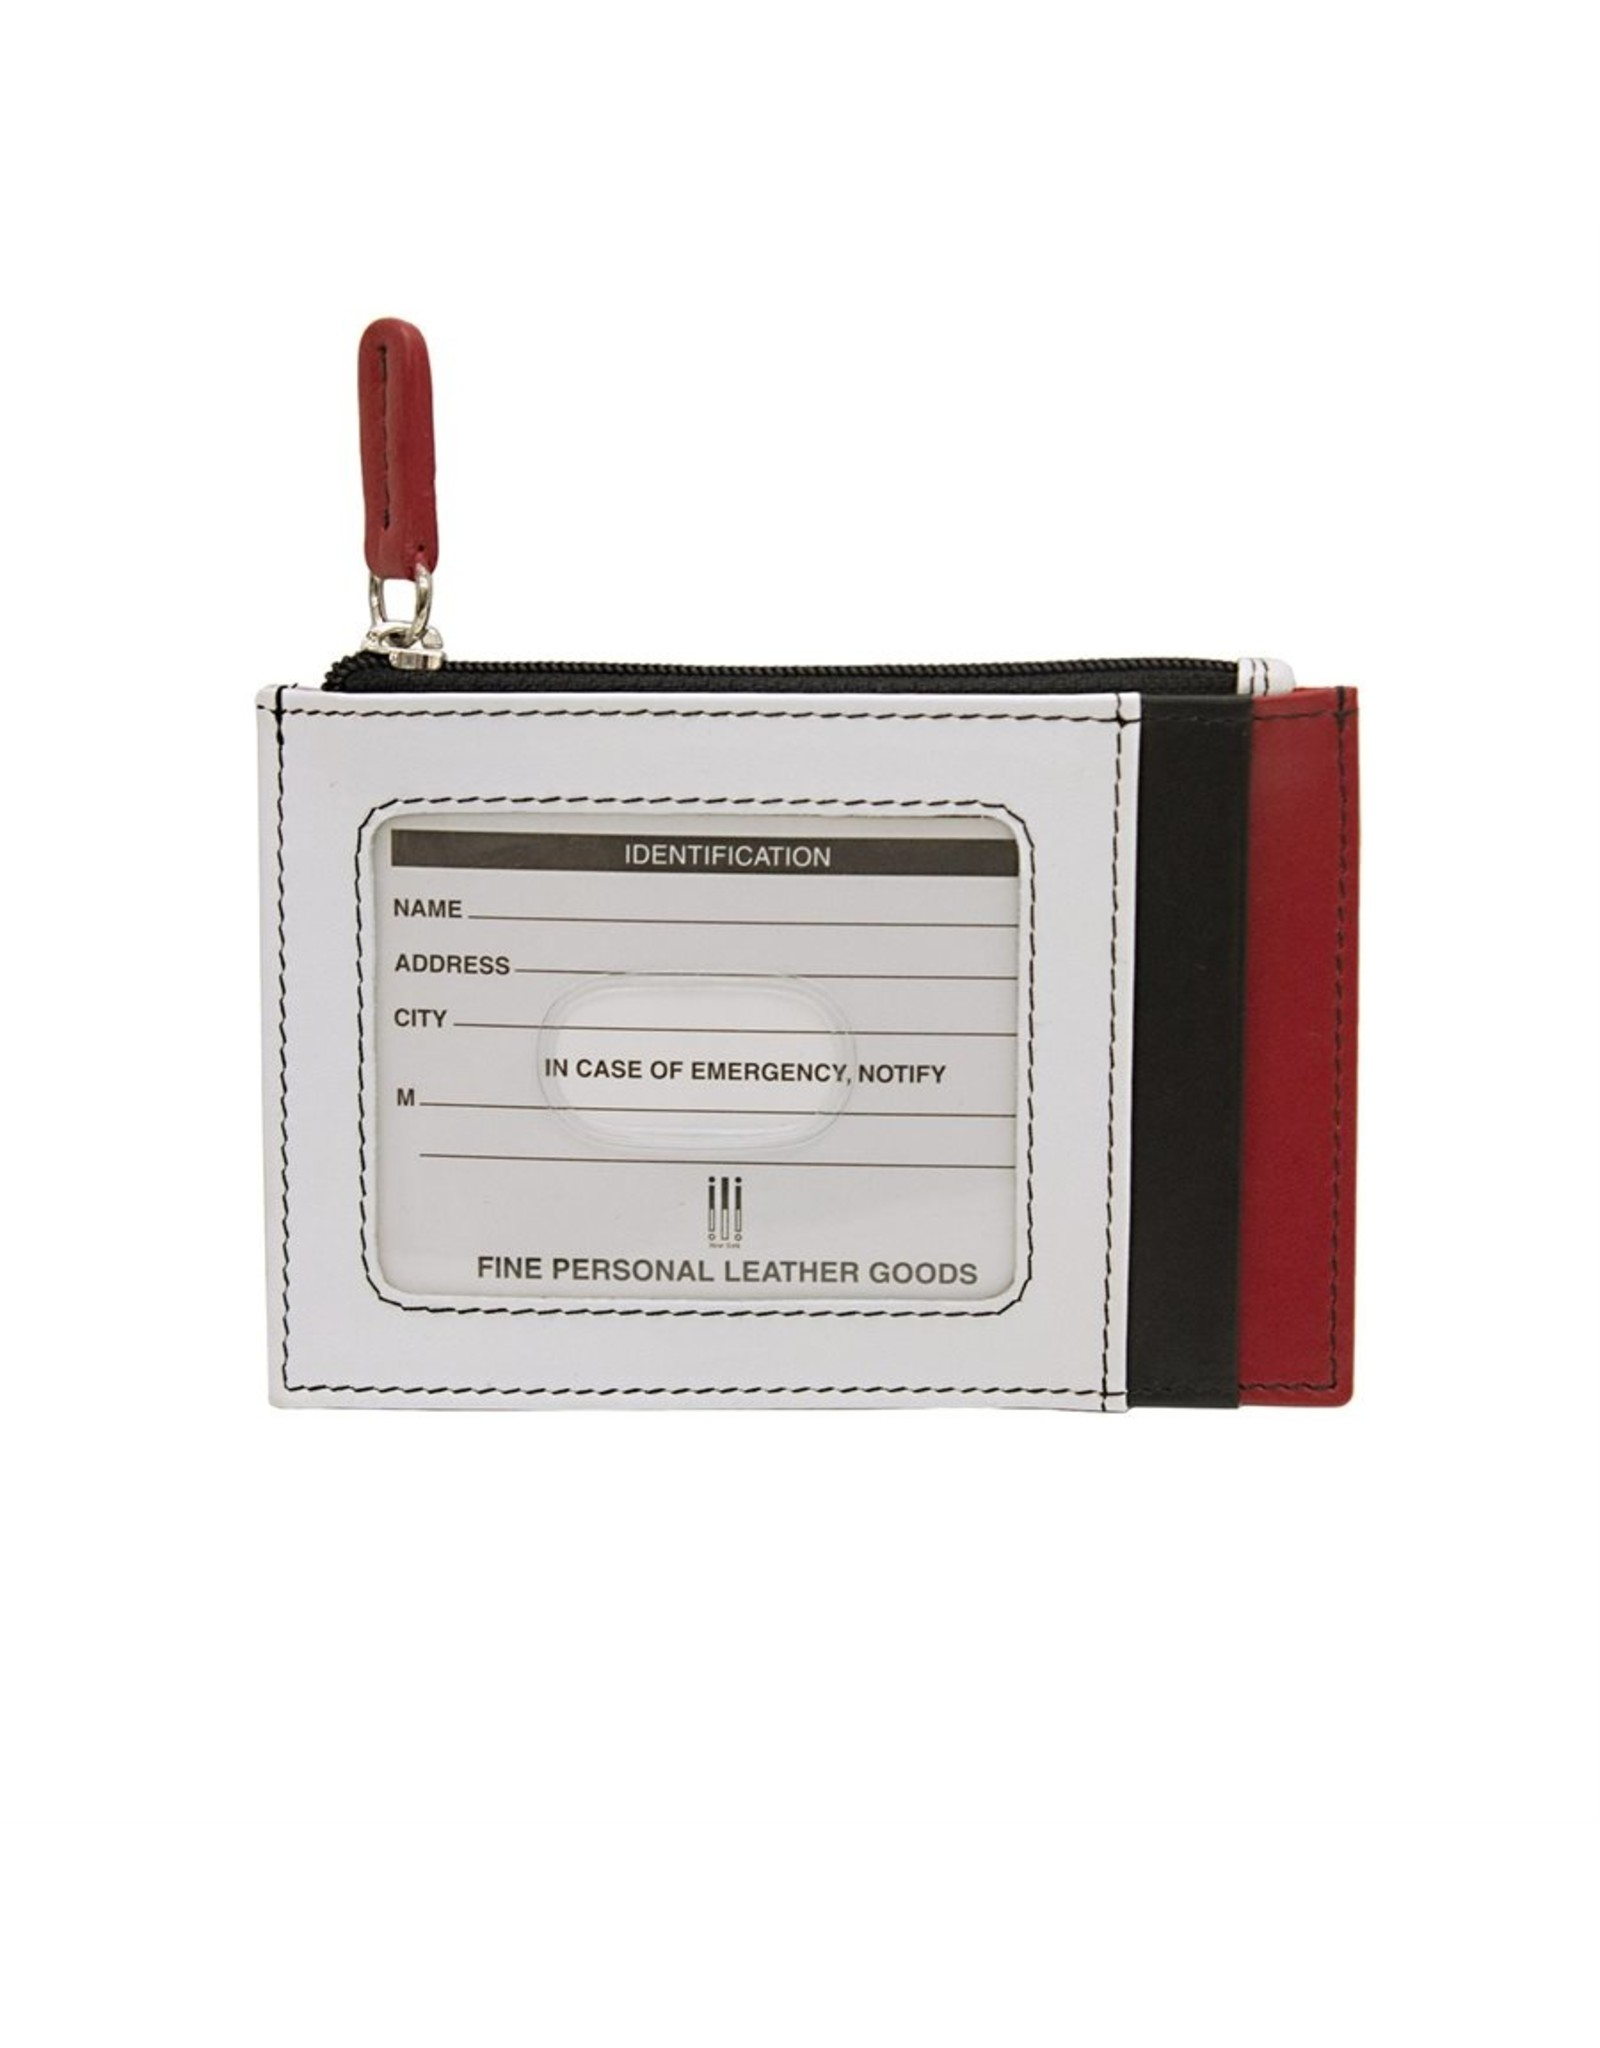 Leather Handbags and Accessories 7416 Black/White/Red - RFID Card Holder